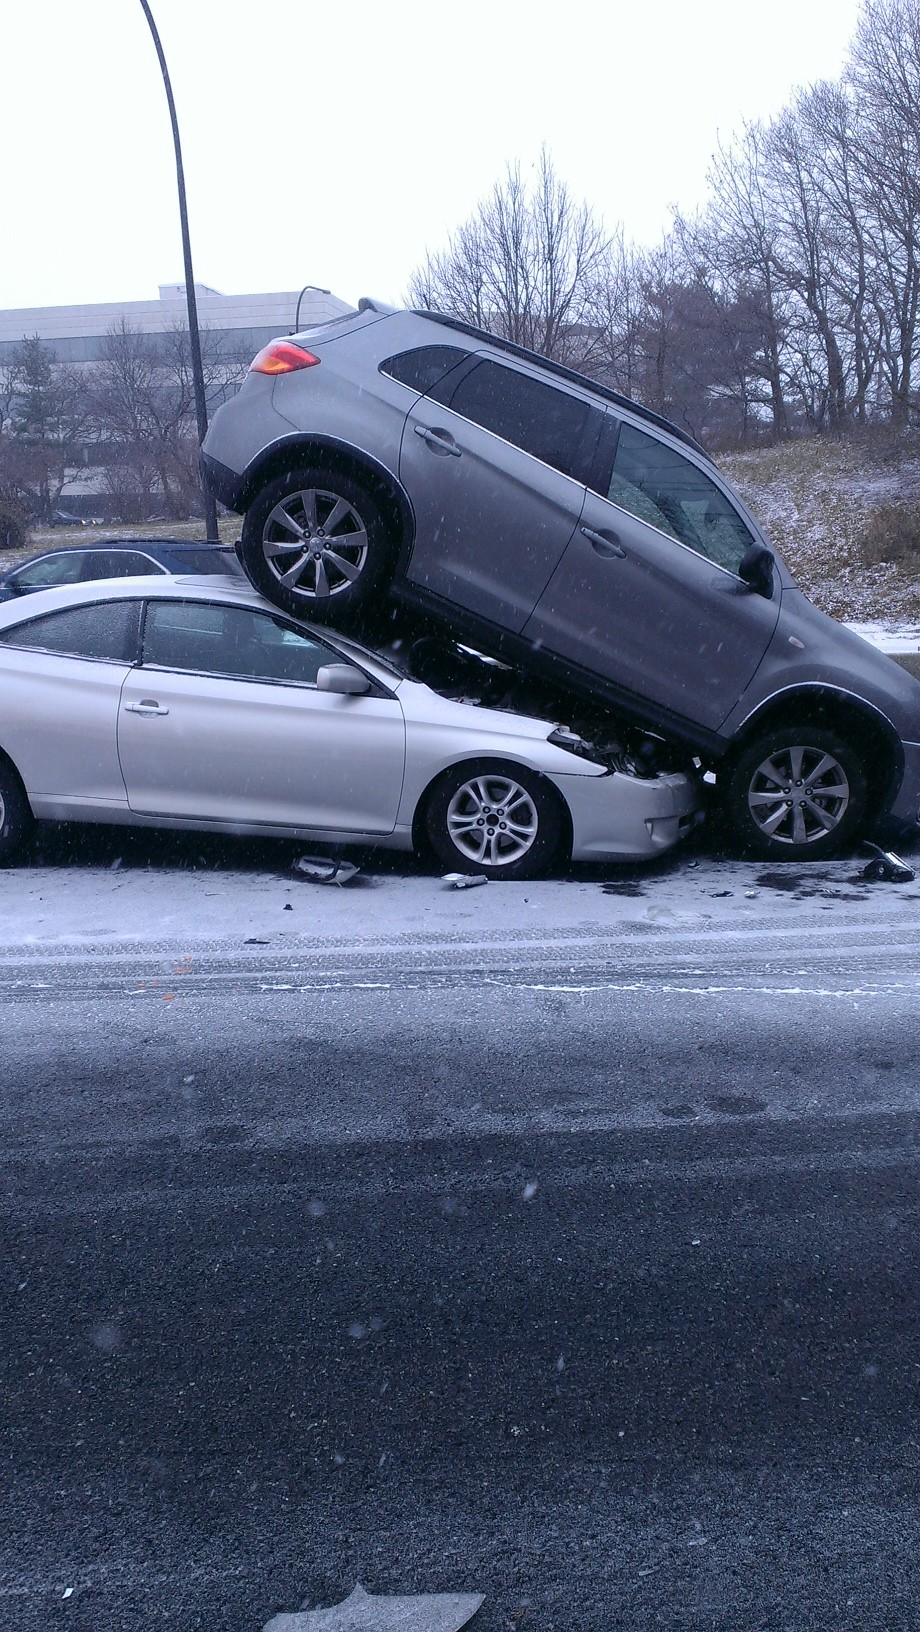 Icy, slippery roads are already causing accidents this morning. This collision was part of a seven-car pile up on the Wantagh Parkway Tuesday morning.